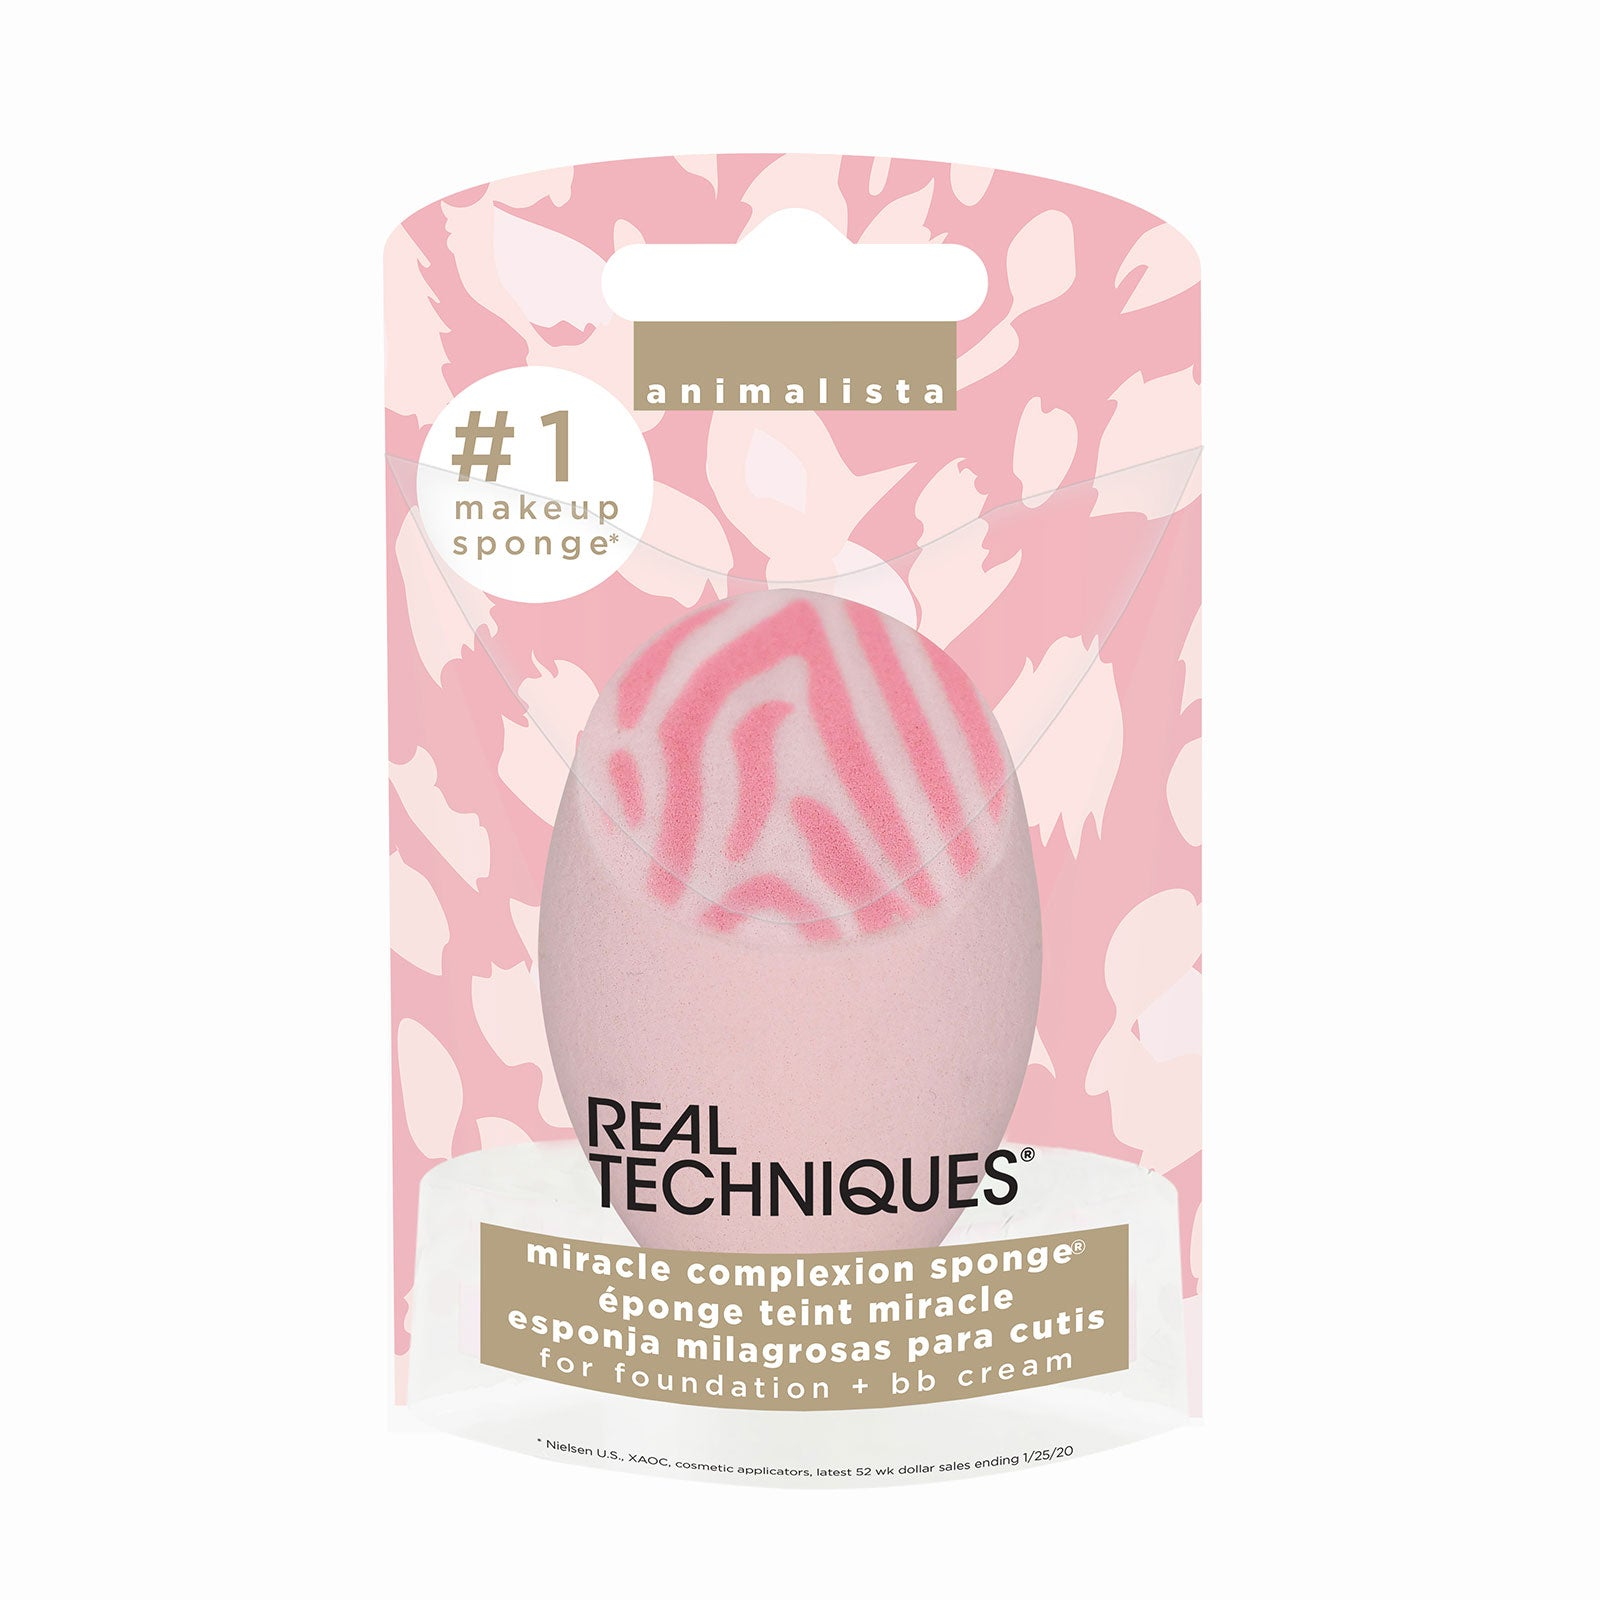 Real Techniques Animalista Zebra Miracle Complexion Sponge